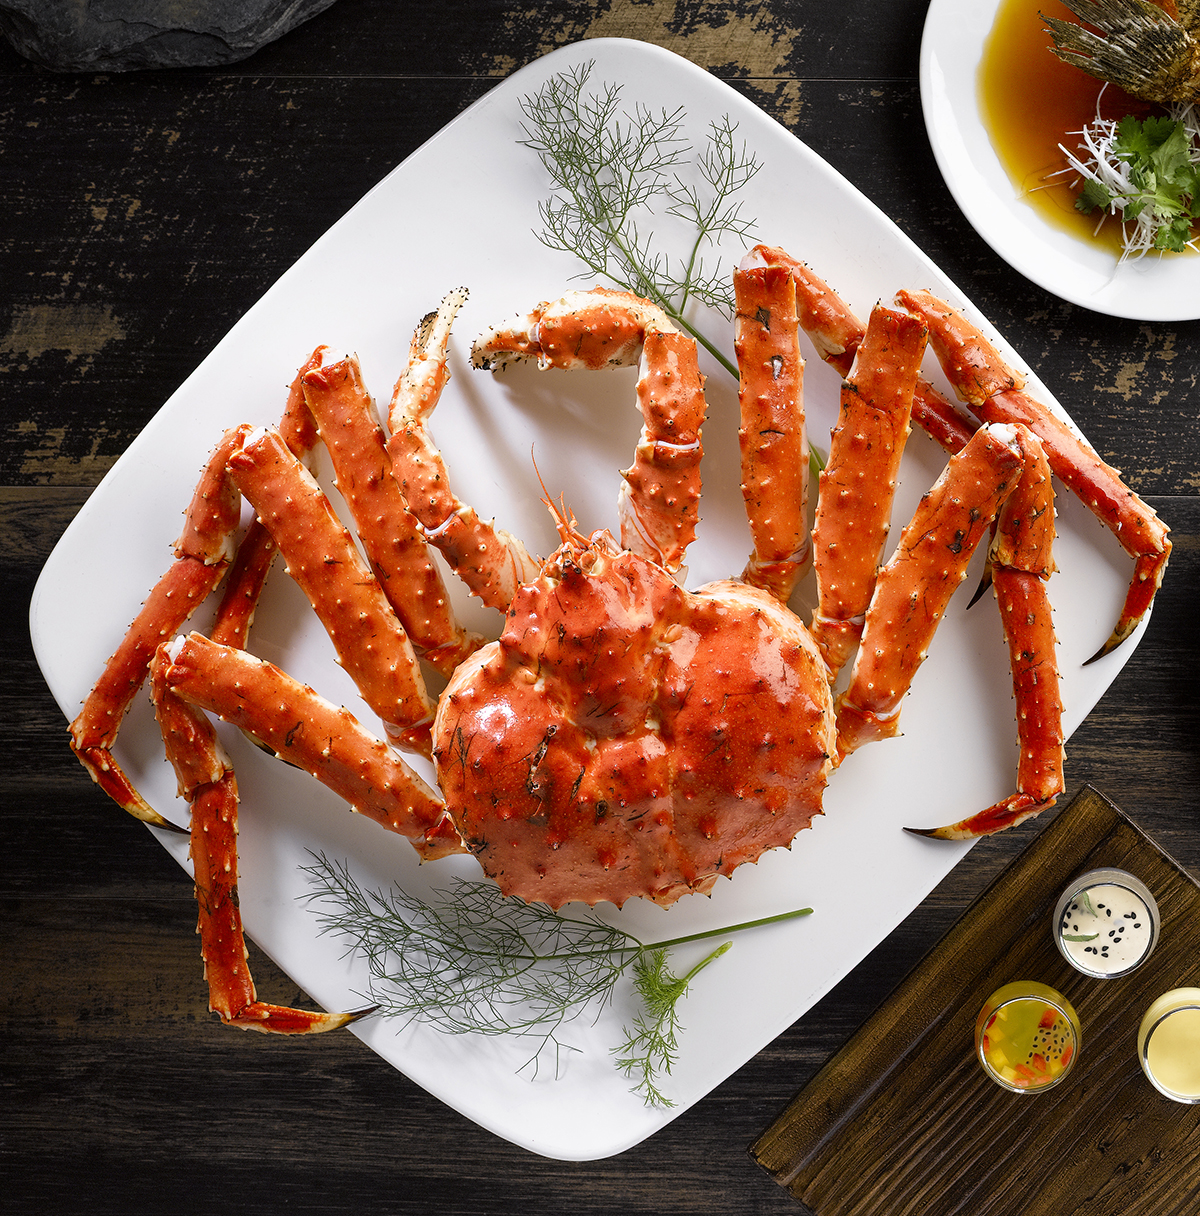 Enjoy 50% OFF on Live Alaskan Crab and More at JUMBO Seafood   Why Not Deals 3 & Promotions